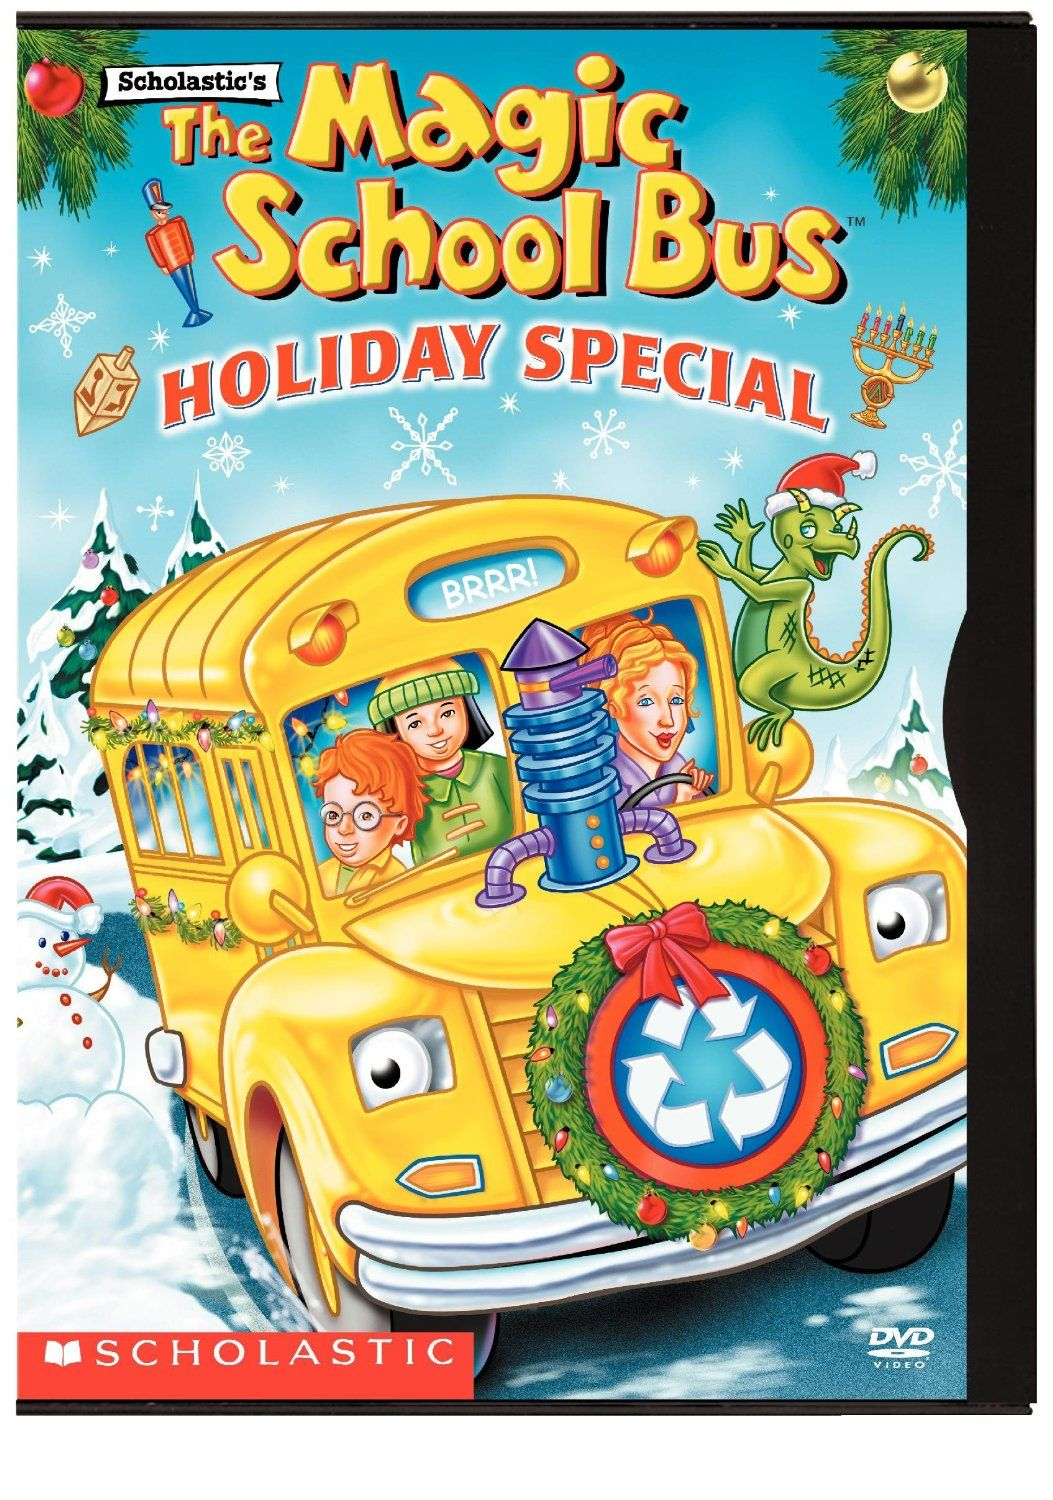 The Magic School Bus Holiday Special For A Book Themed Christmas